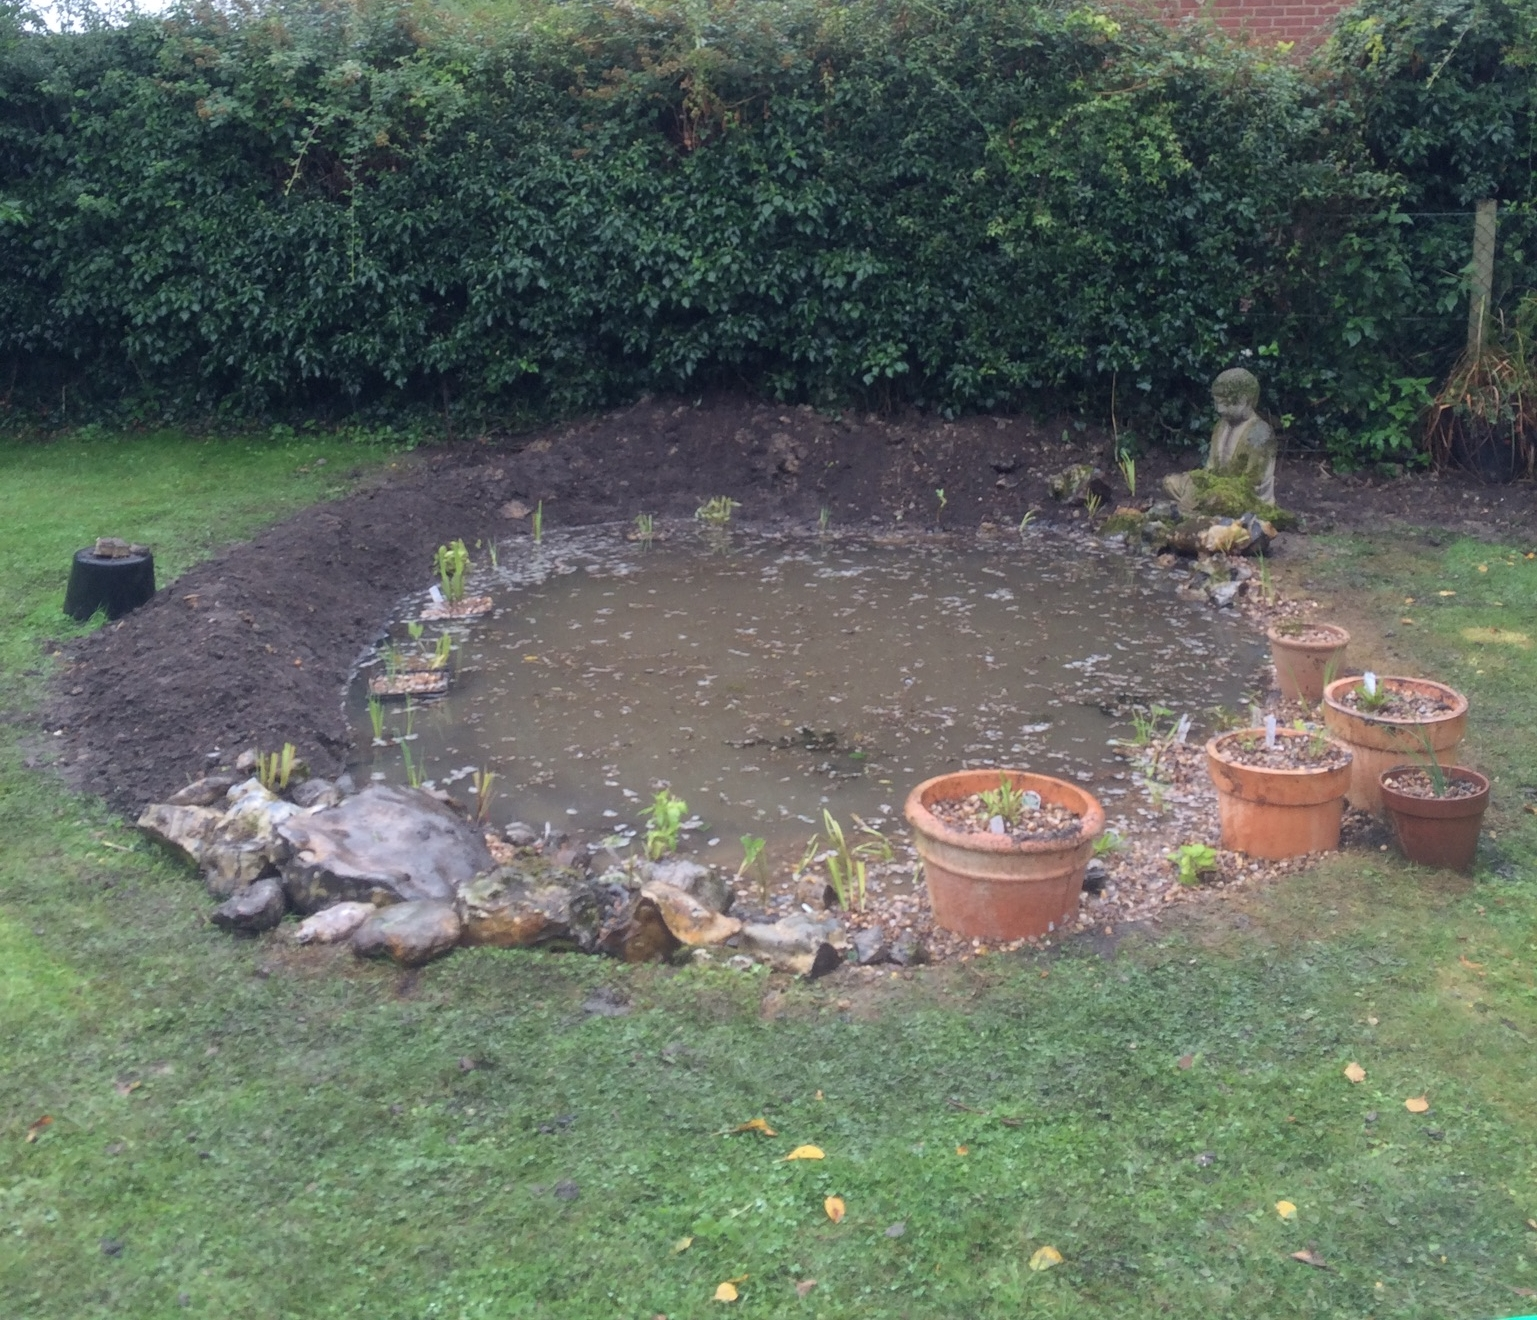 After picture: New pond design completed, with new liner, re planted with native pond species and re-leveld to include shelve and long sloping side for wildlife access.